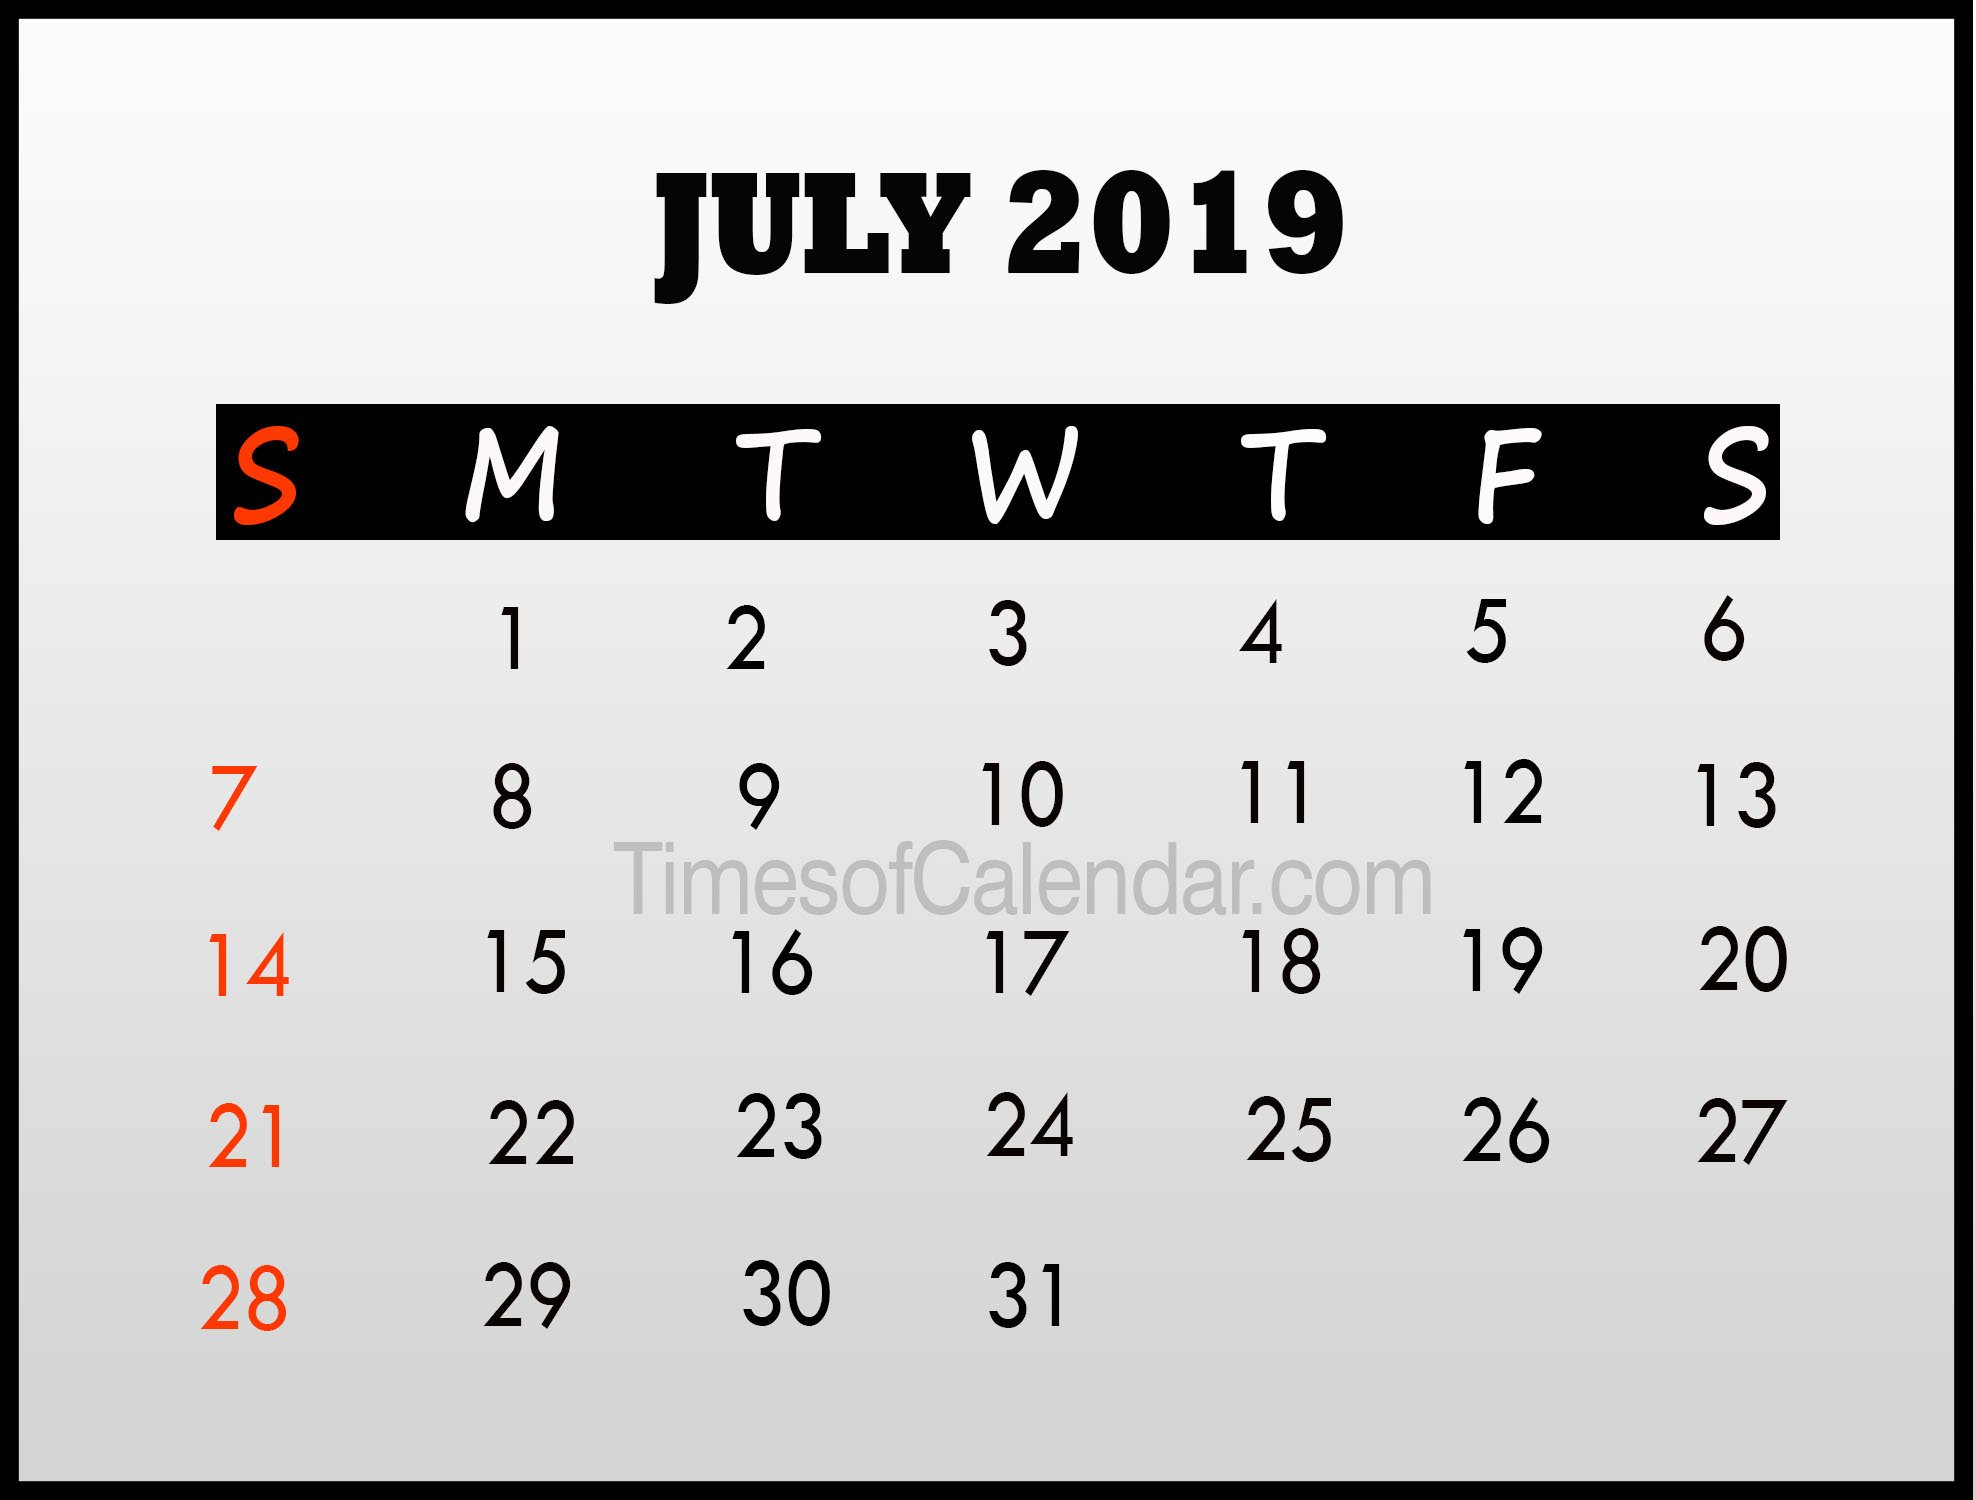 July 2019 Calendar Template – Times Of Calendar July 8 2019 Calendar